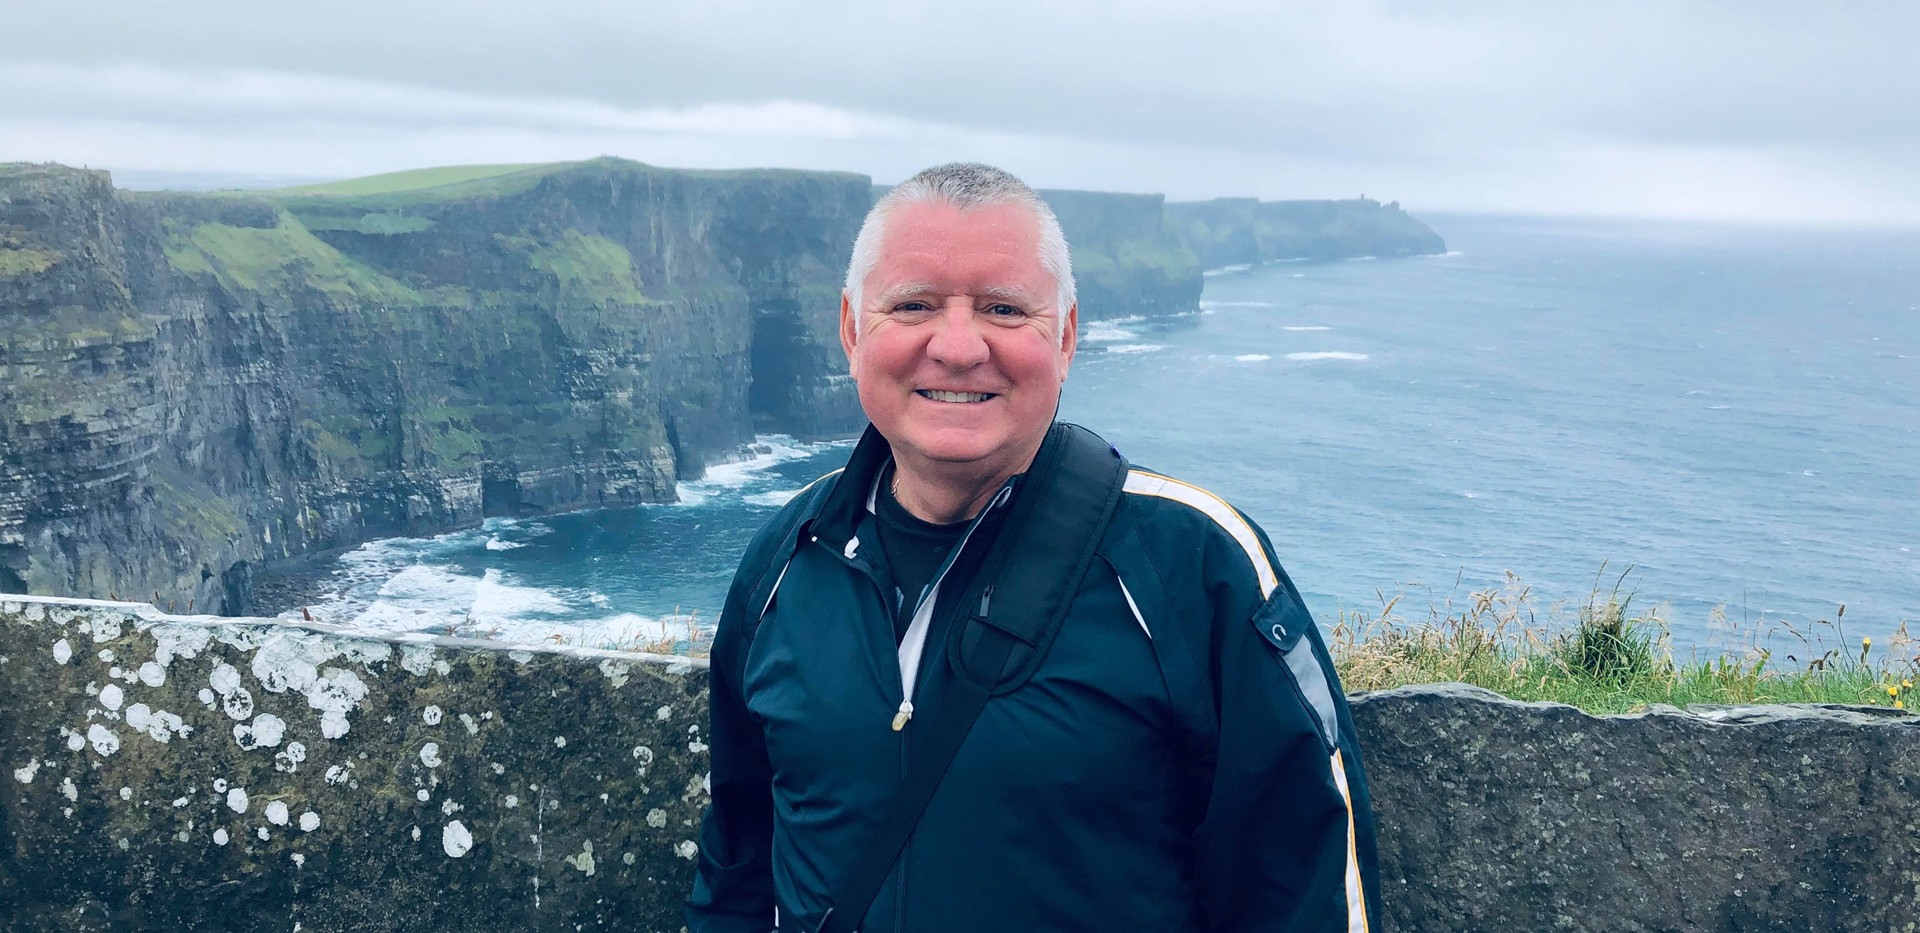 Gene at the Cliffs of Moher, Ireland